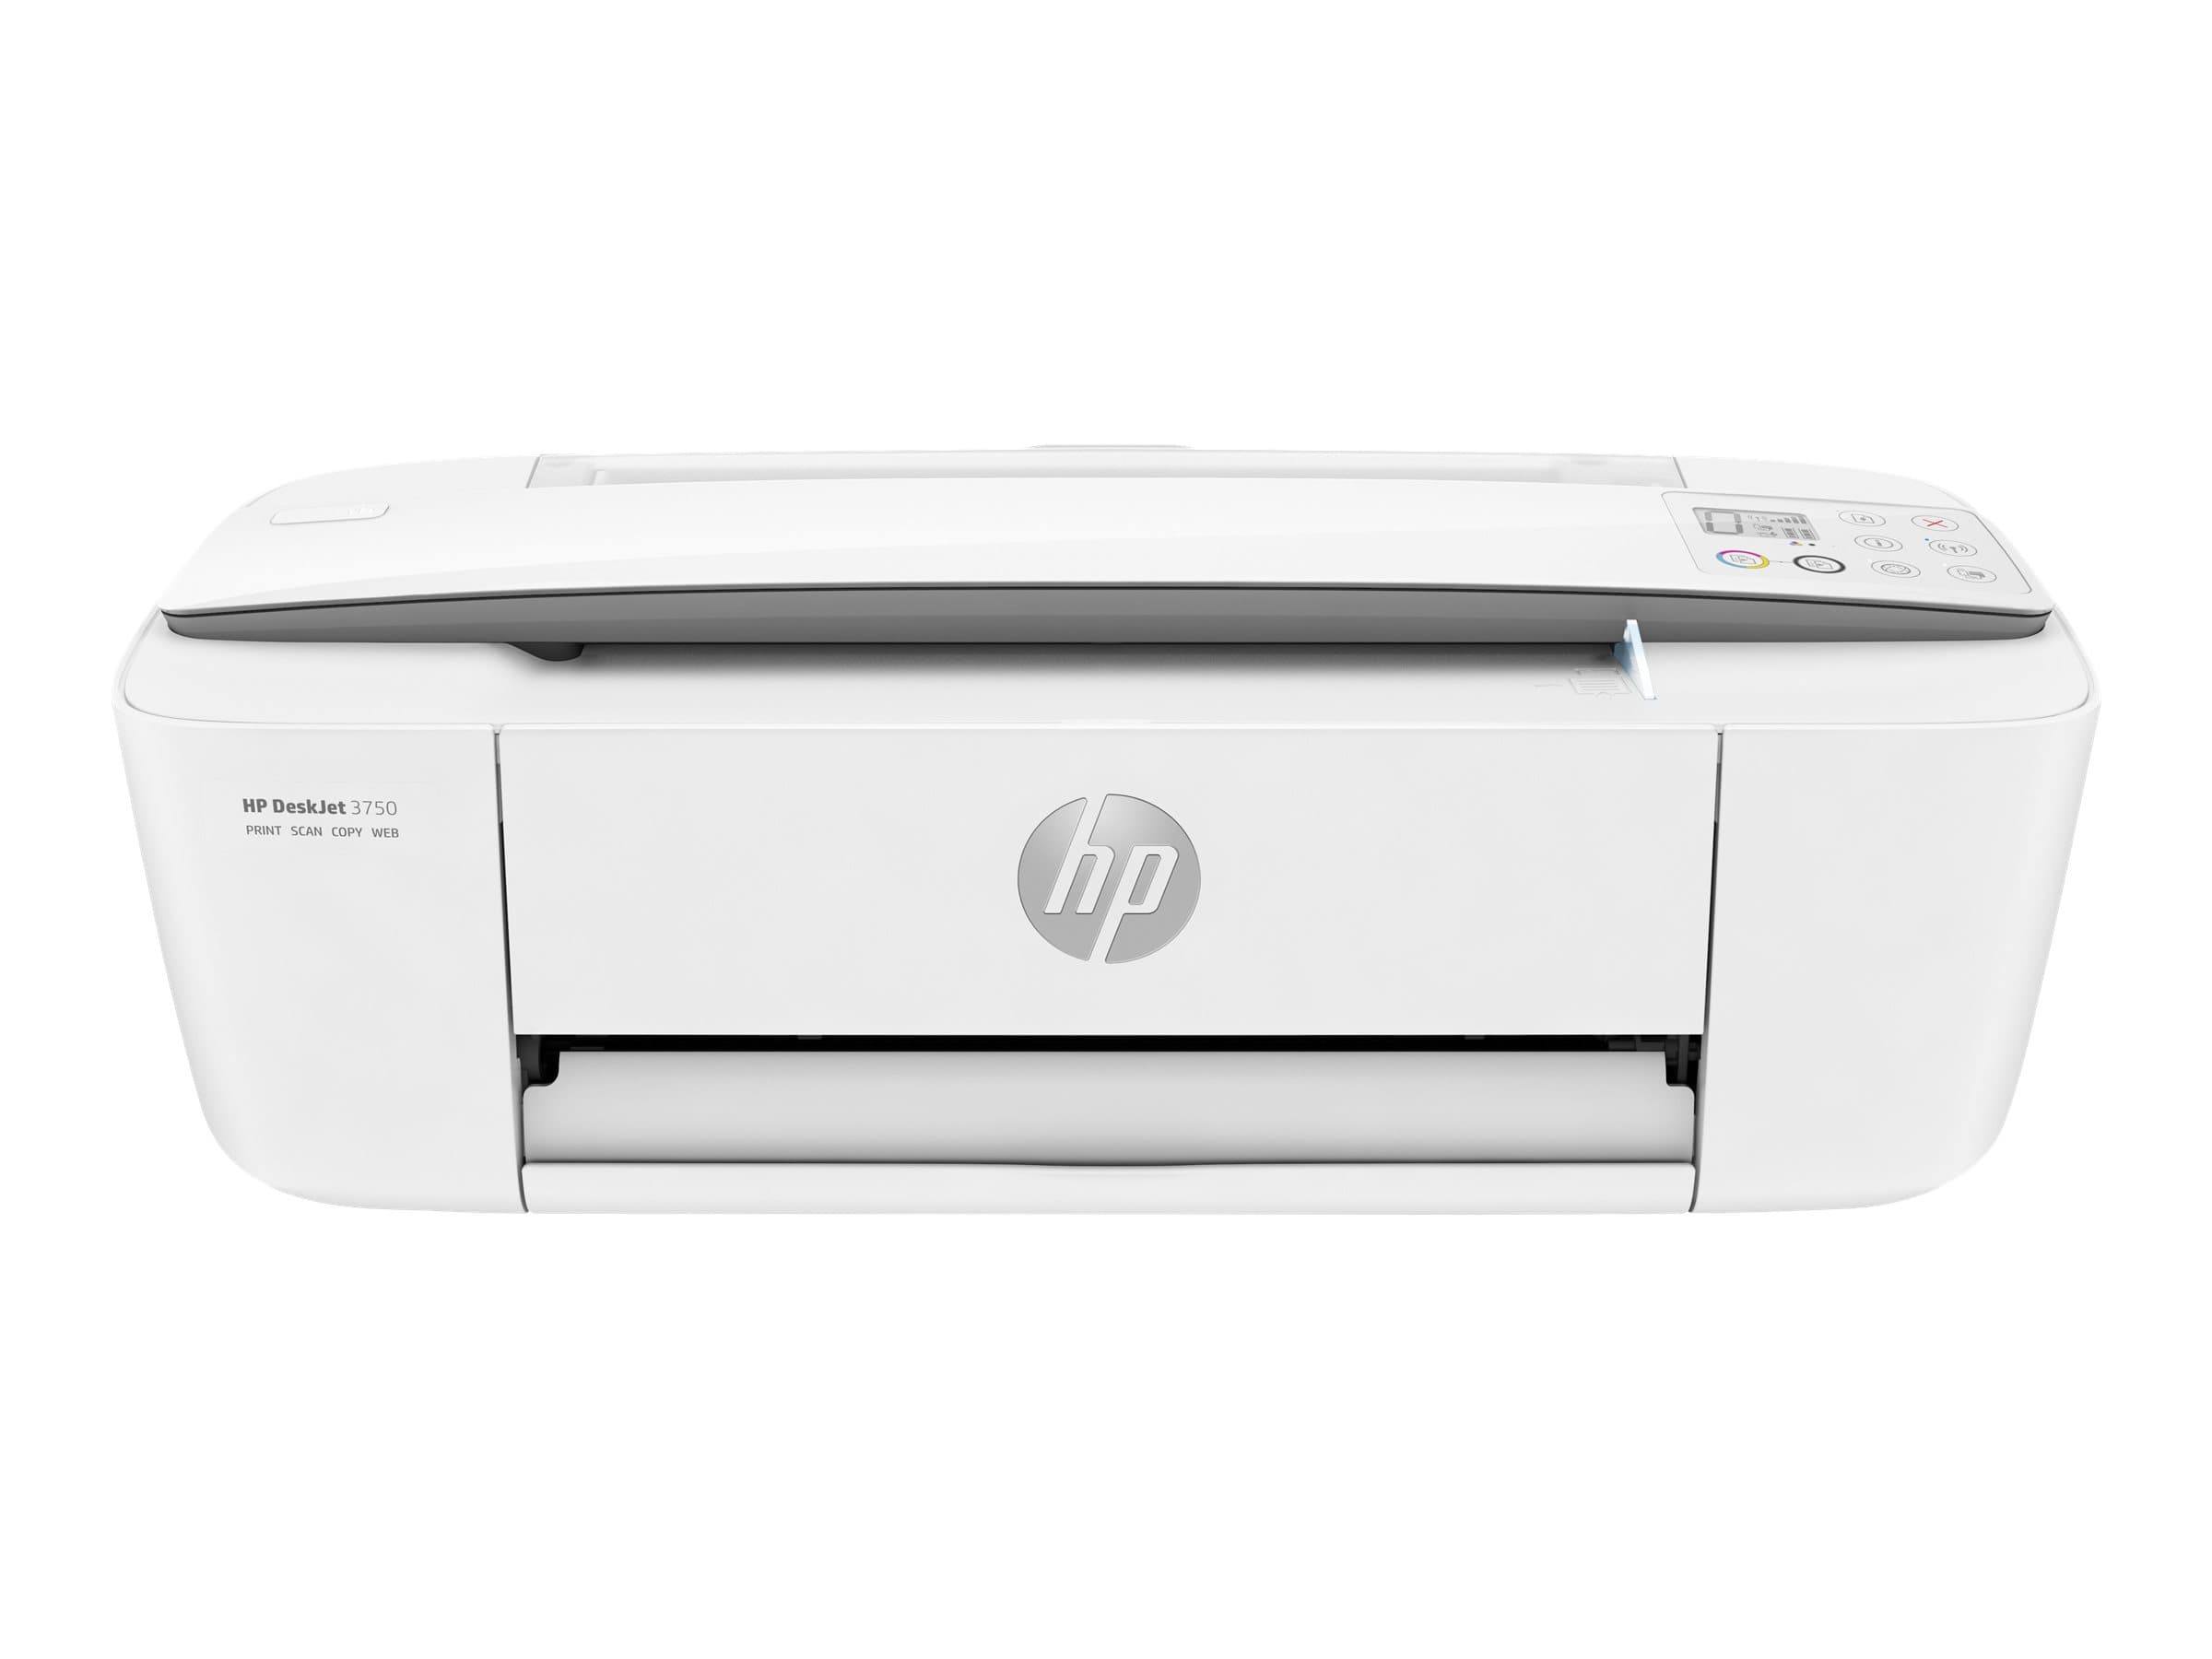 HP Deskjet 3750 All-in-One - imprimante multifonctions jet d'encre couleur A4 - Wifi, USB